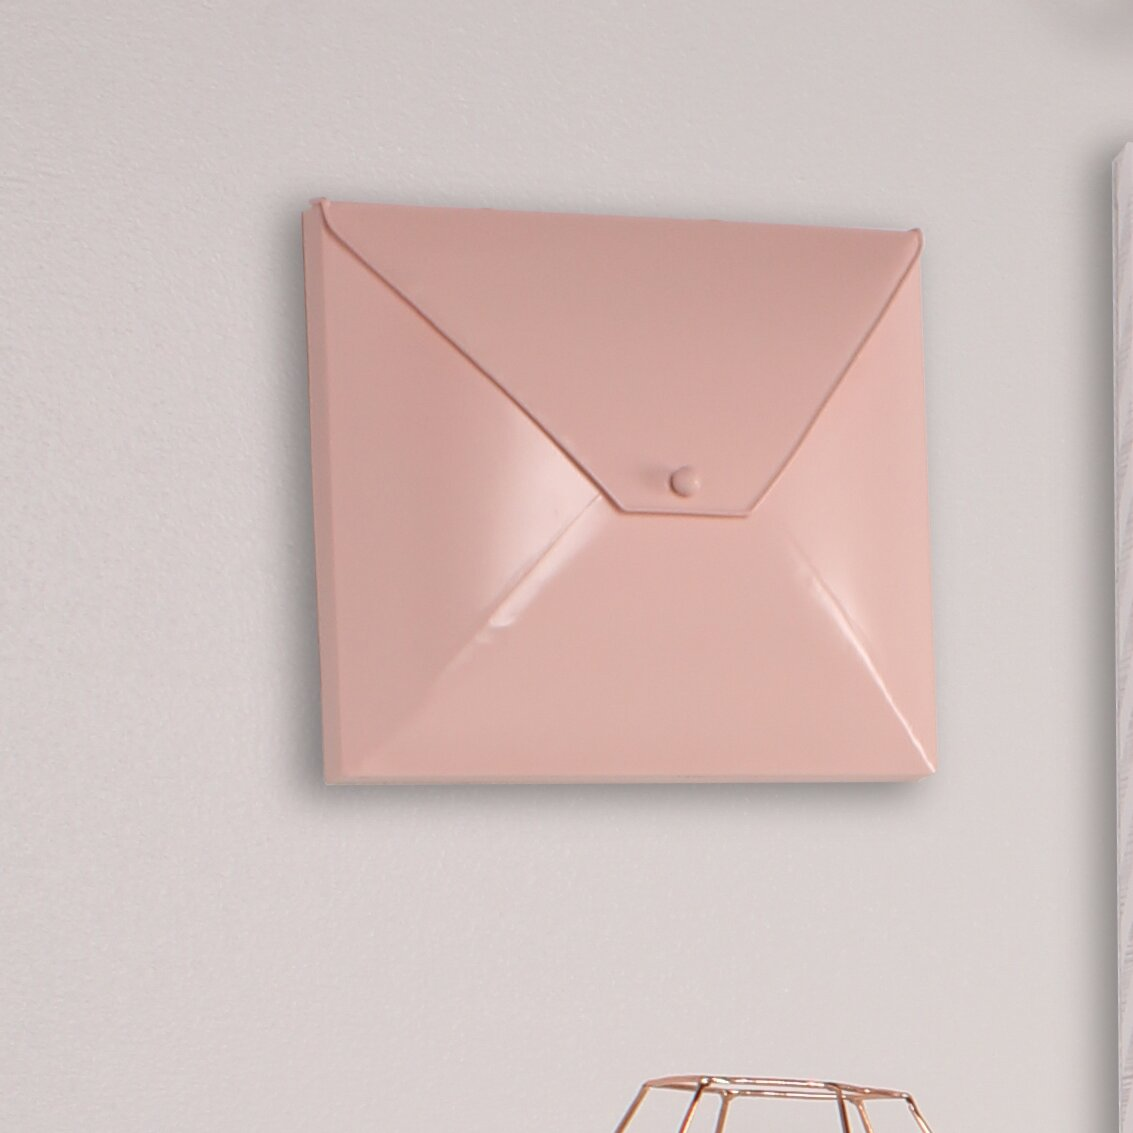 Metal Envelope Wall Decor : Kate and laurel envelope decorative metal wall d?cor wayfair